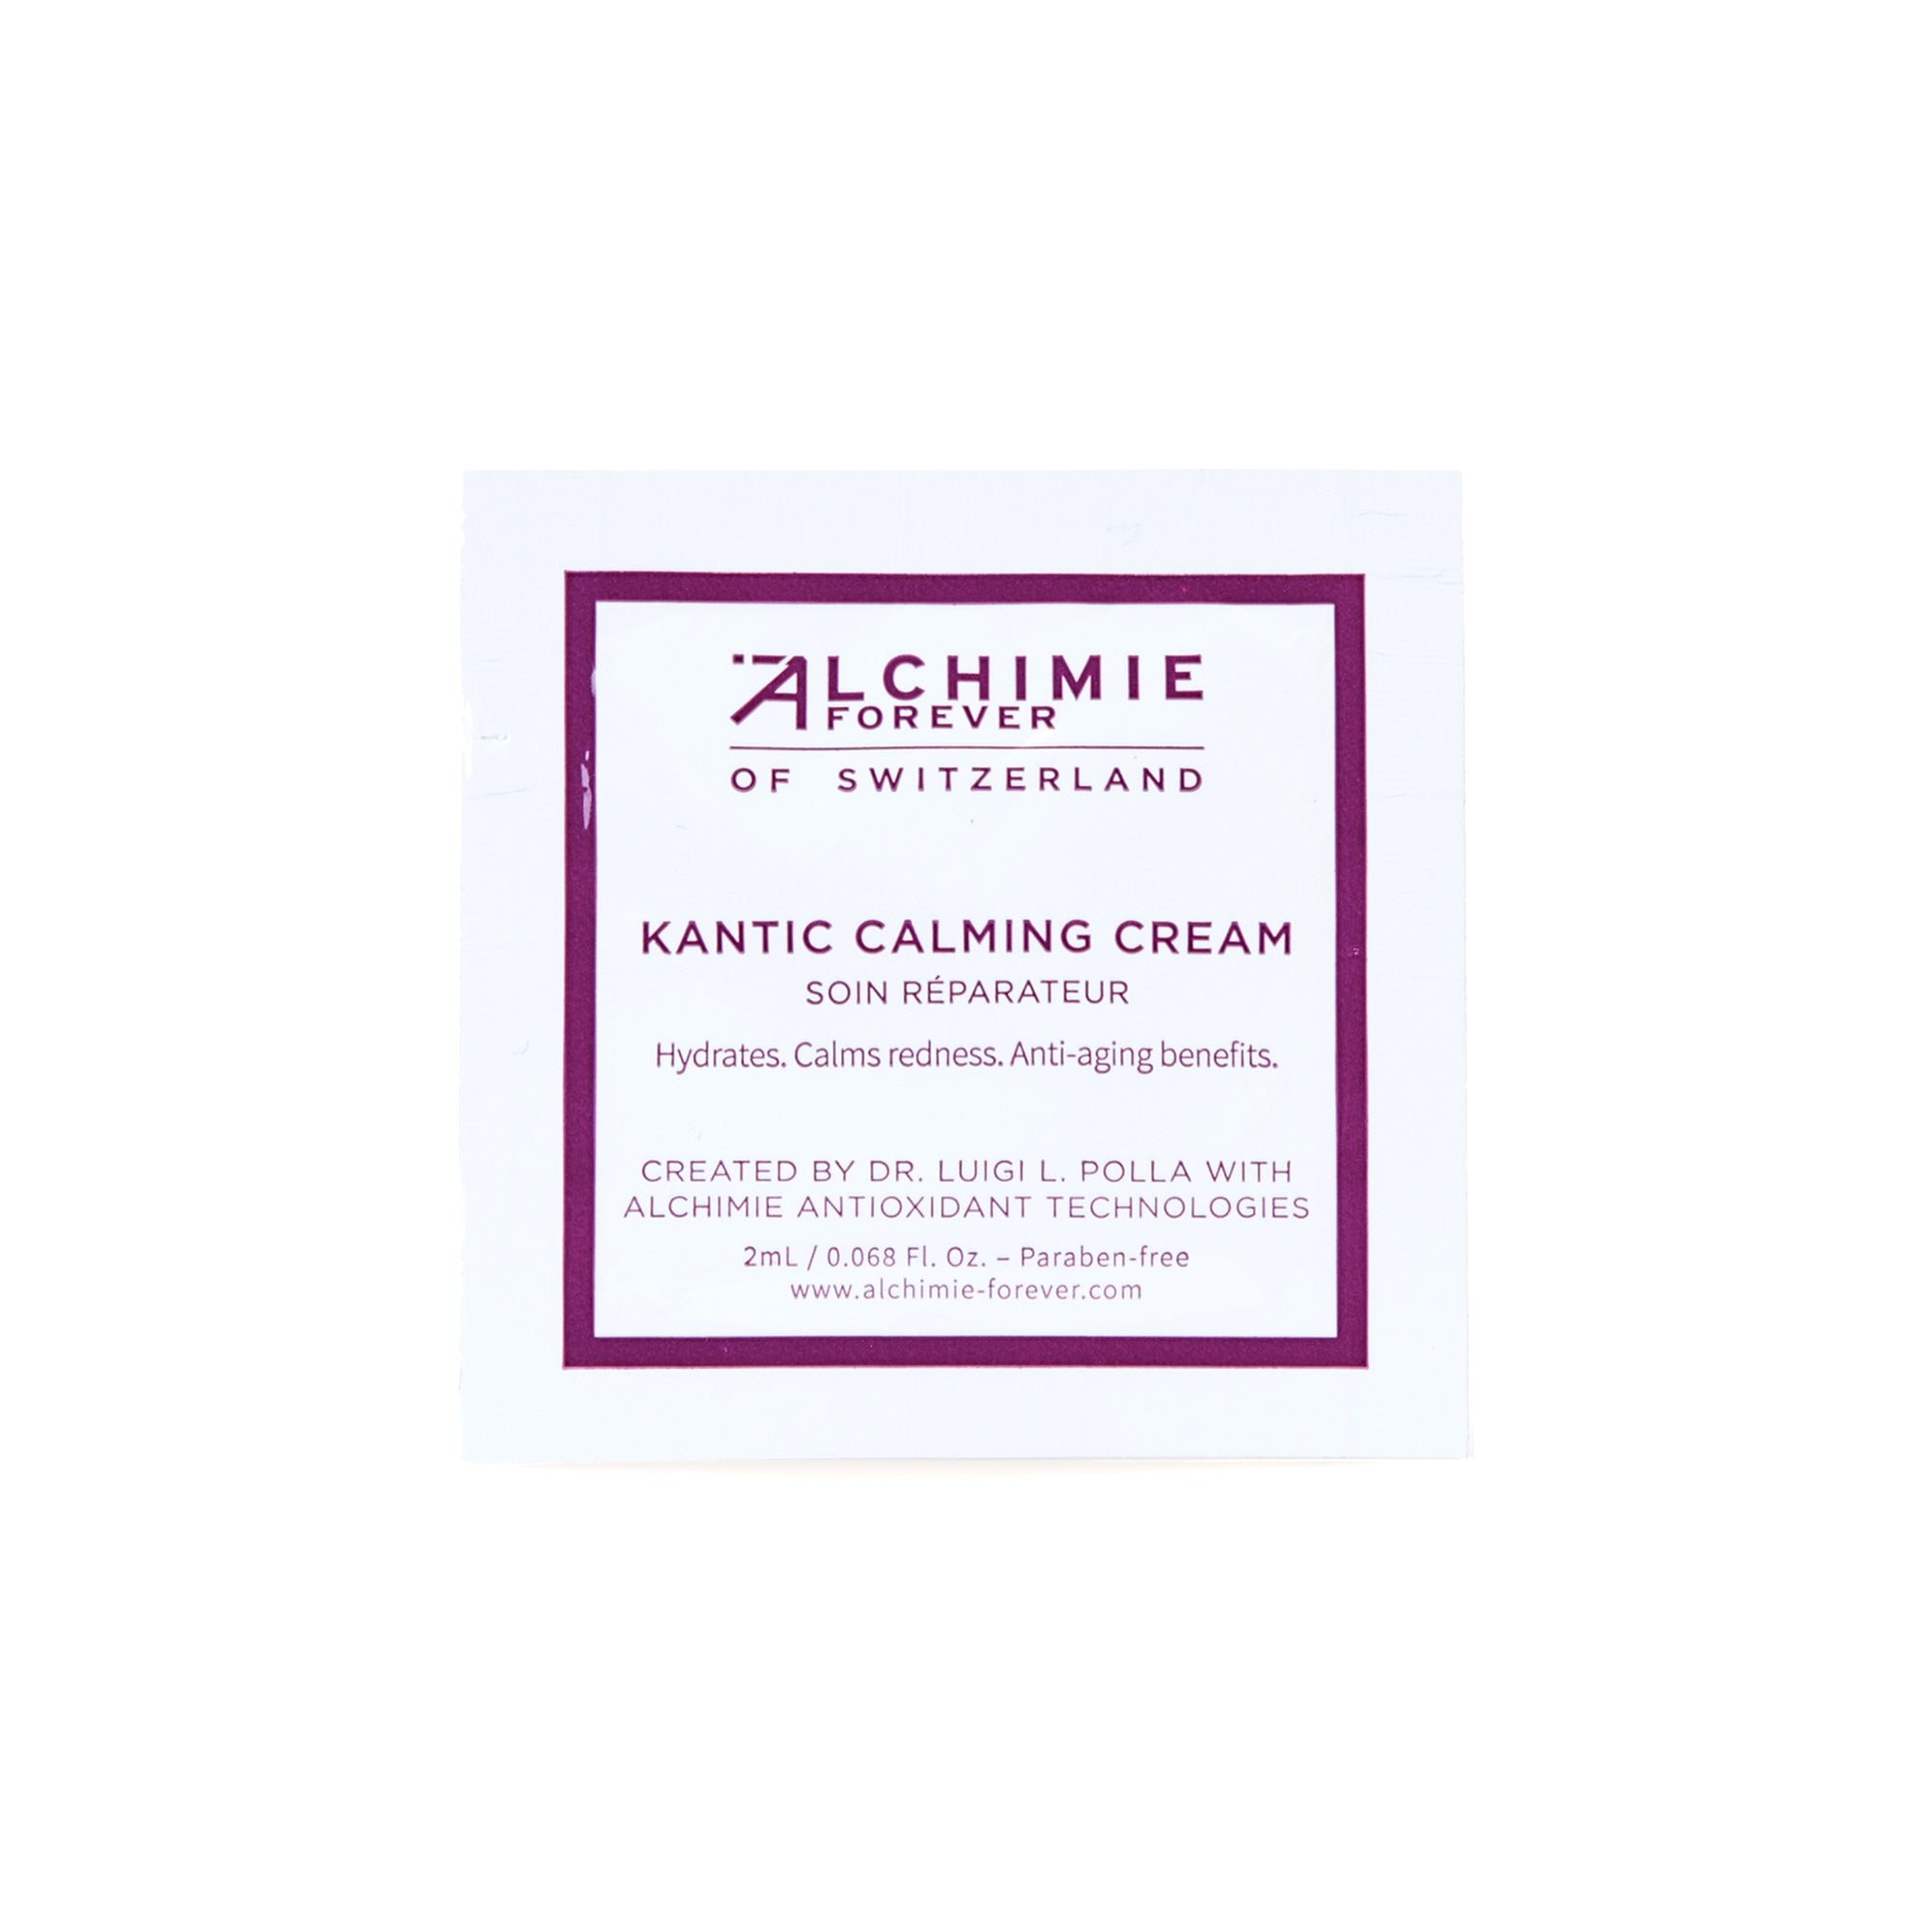 Sample Alchimie Forever - Kantic calming cream - 2ml